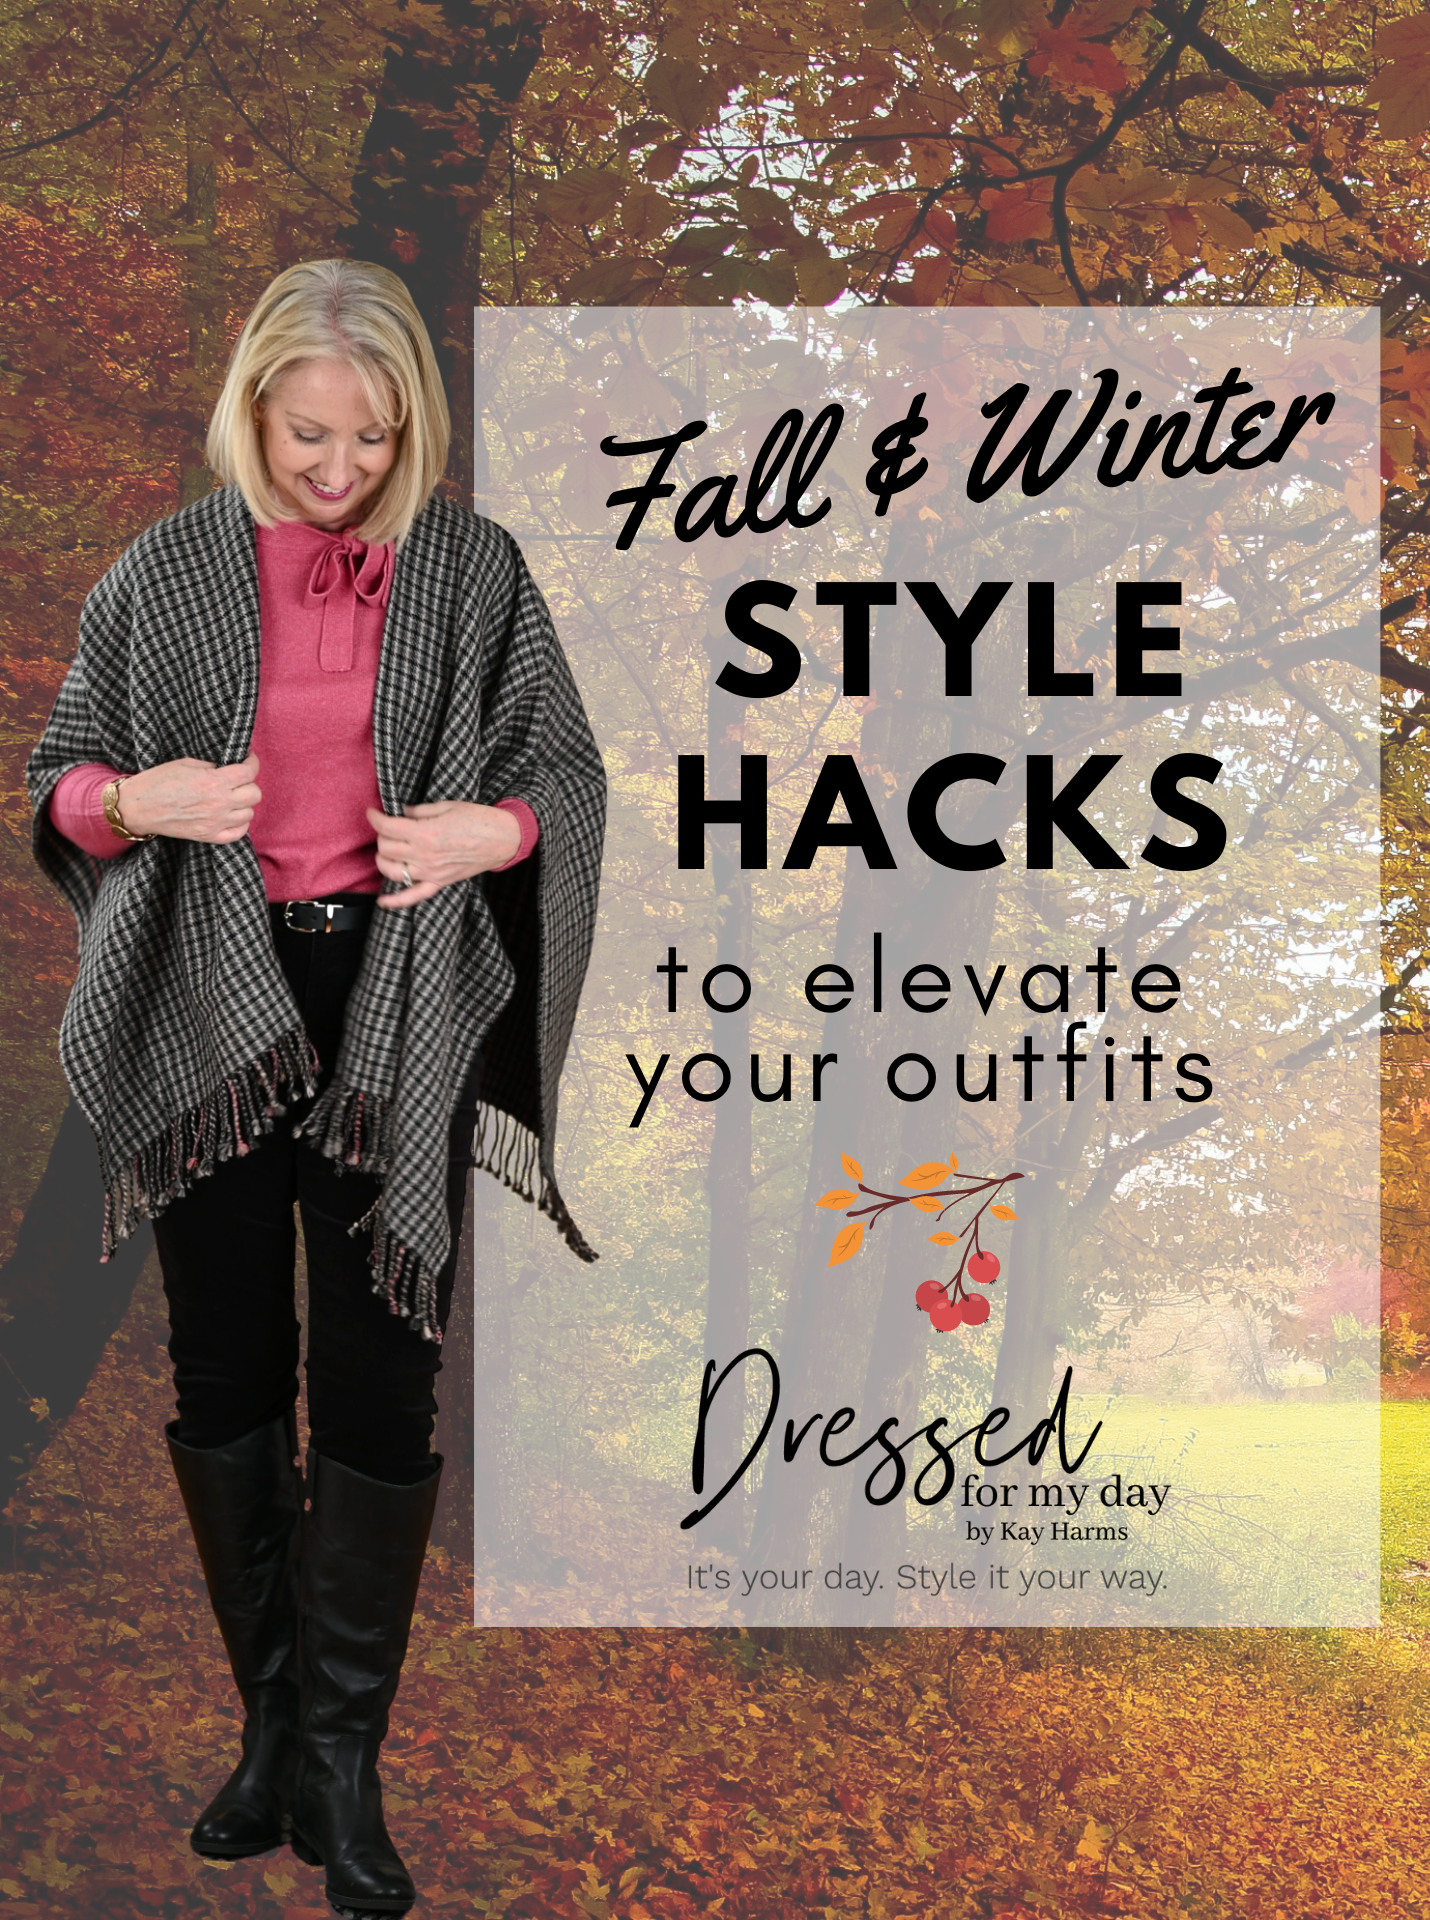 Fall & Winter Style Hacks to Elevate Your Outfits